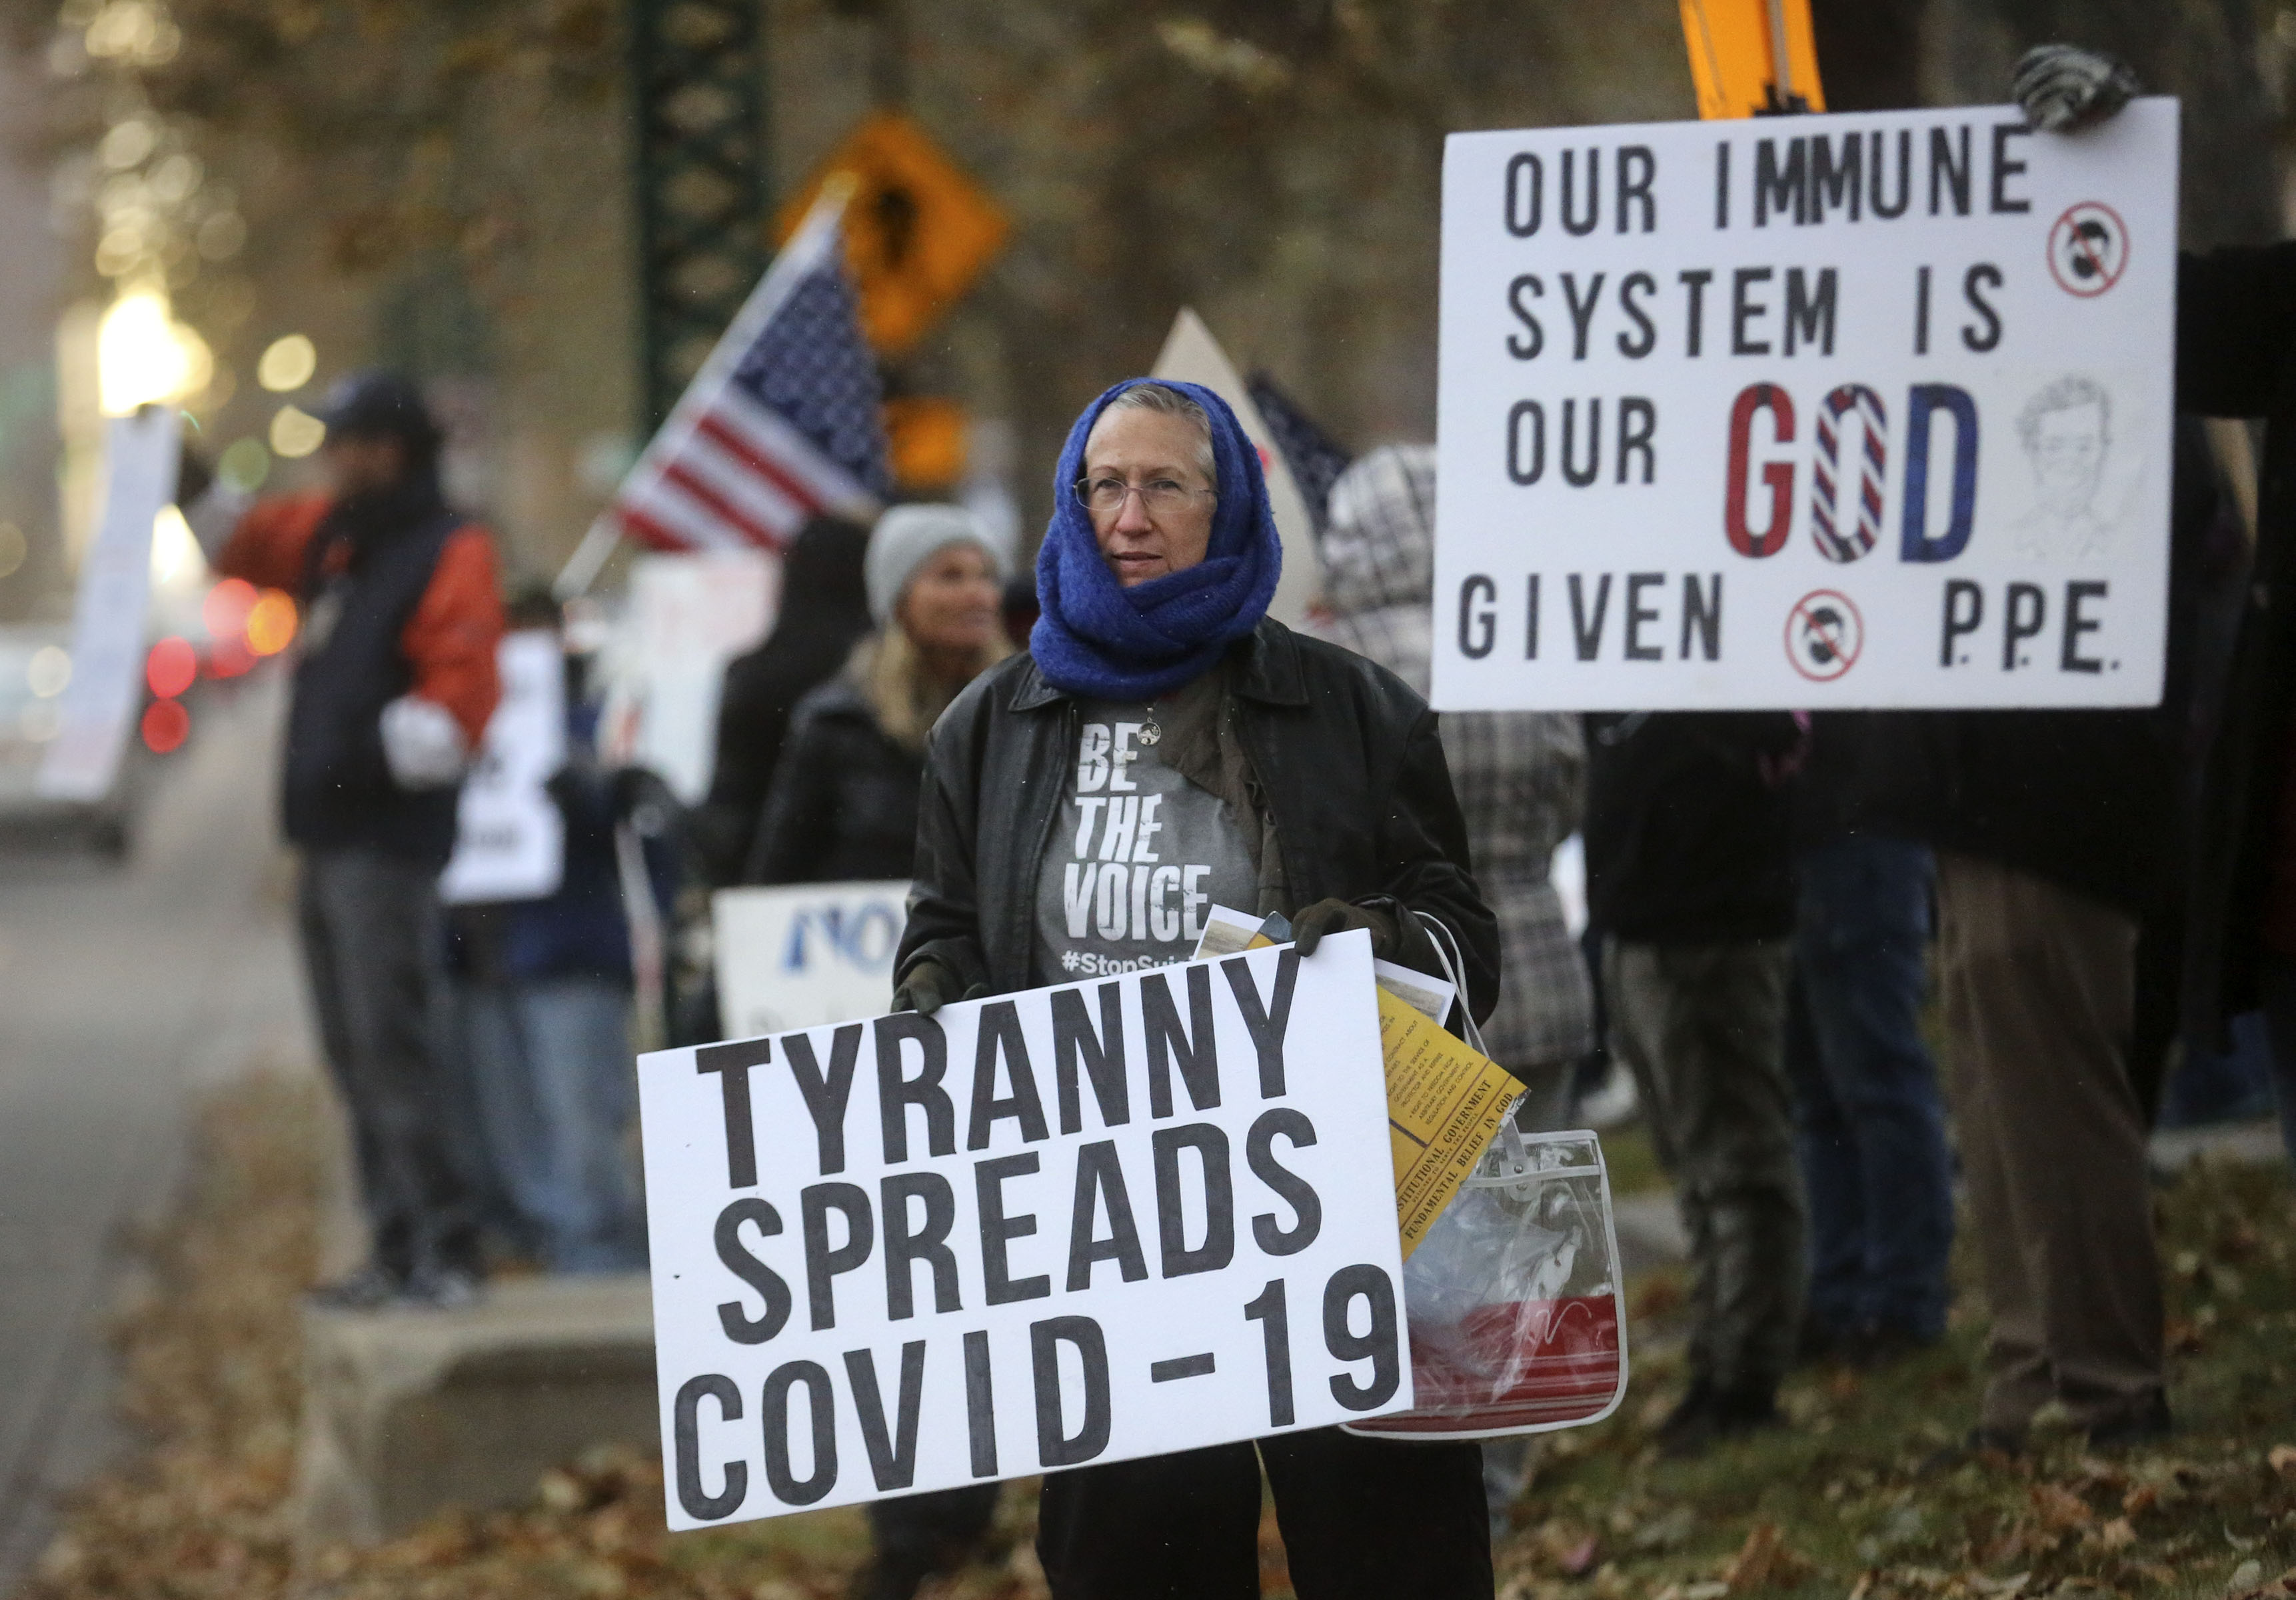 Protesters gather outside of the Governor's Mansion to protest Gov. Gary Herbert's mask mandate and new COVID-19 restrictions in Salt Lake City on Monday, Nov. 9, 2020.